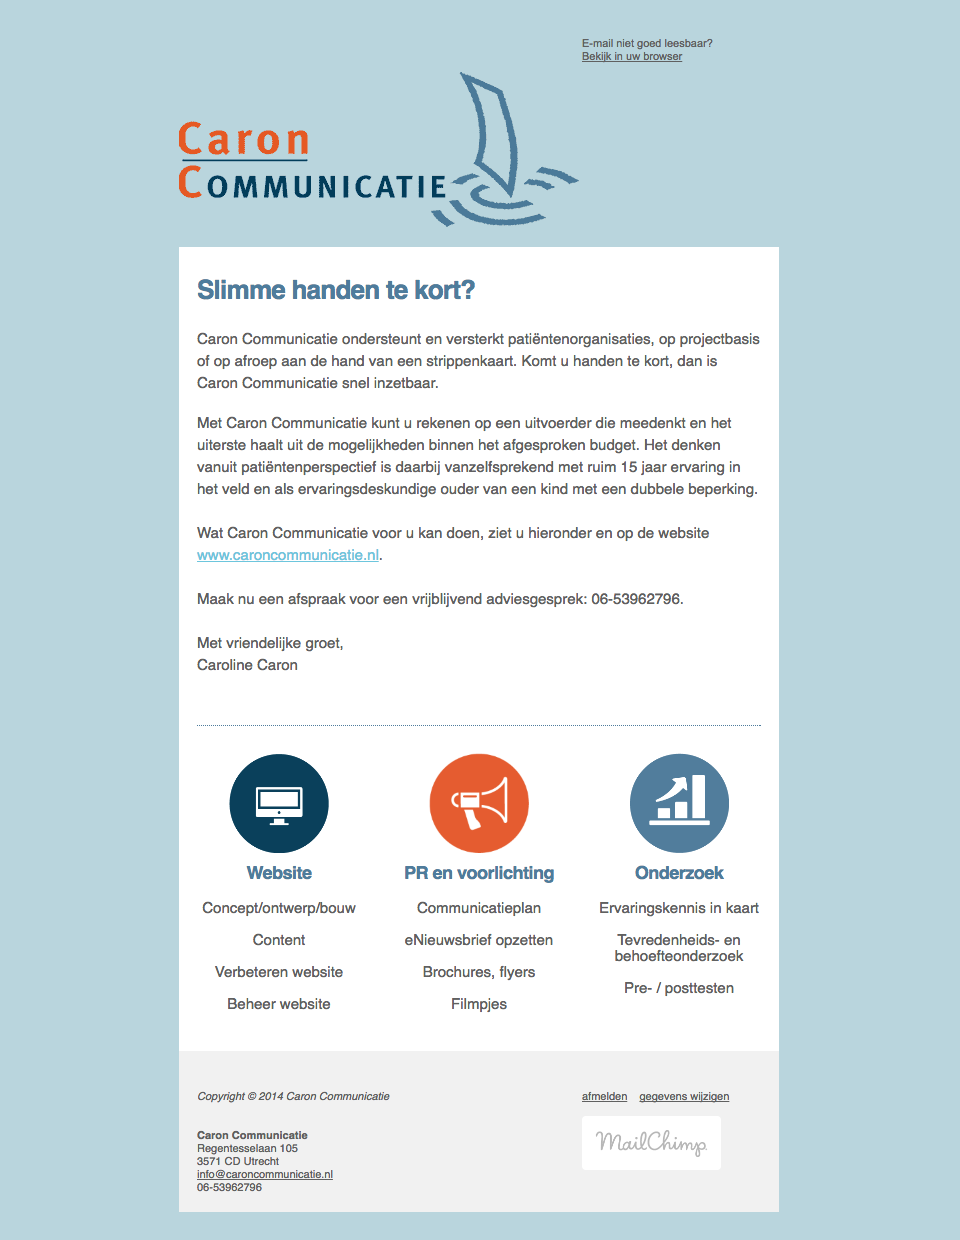 Caron Communicatie Newsletter